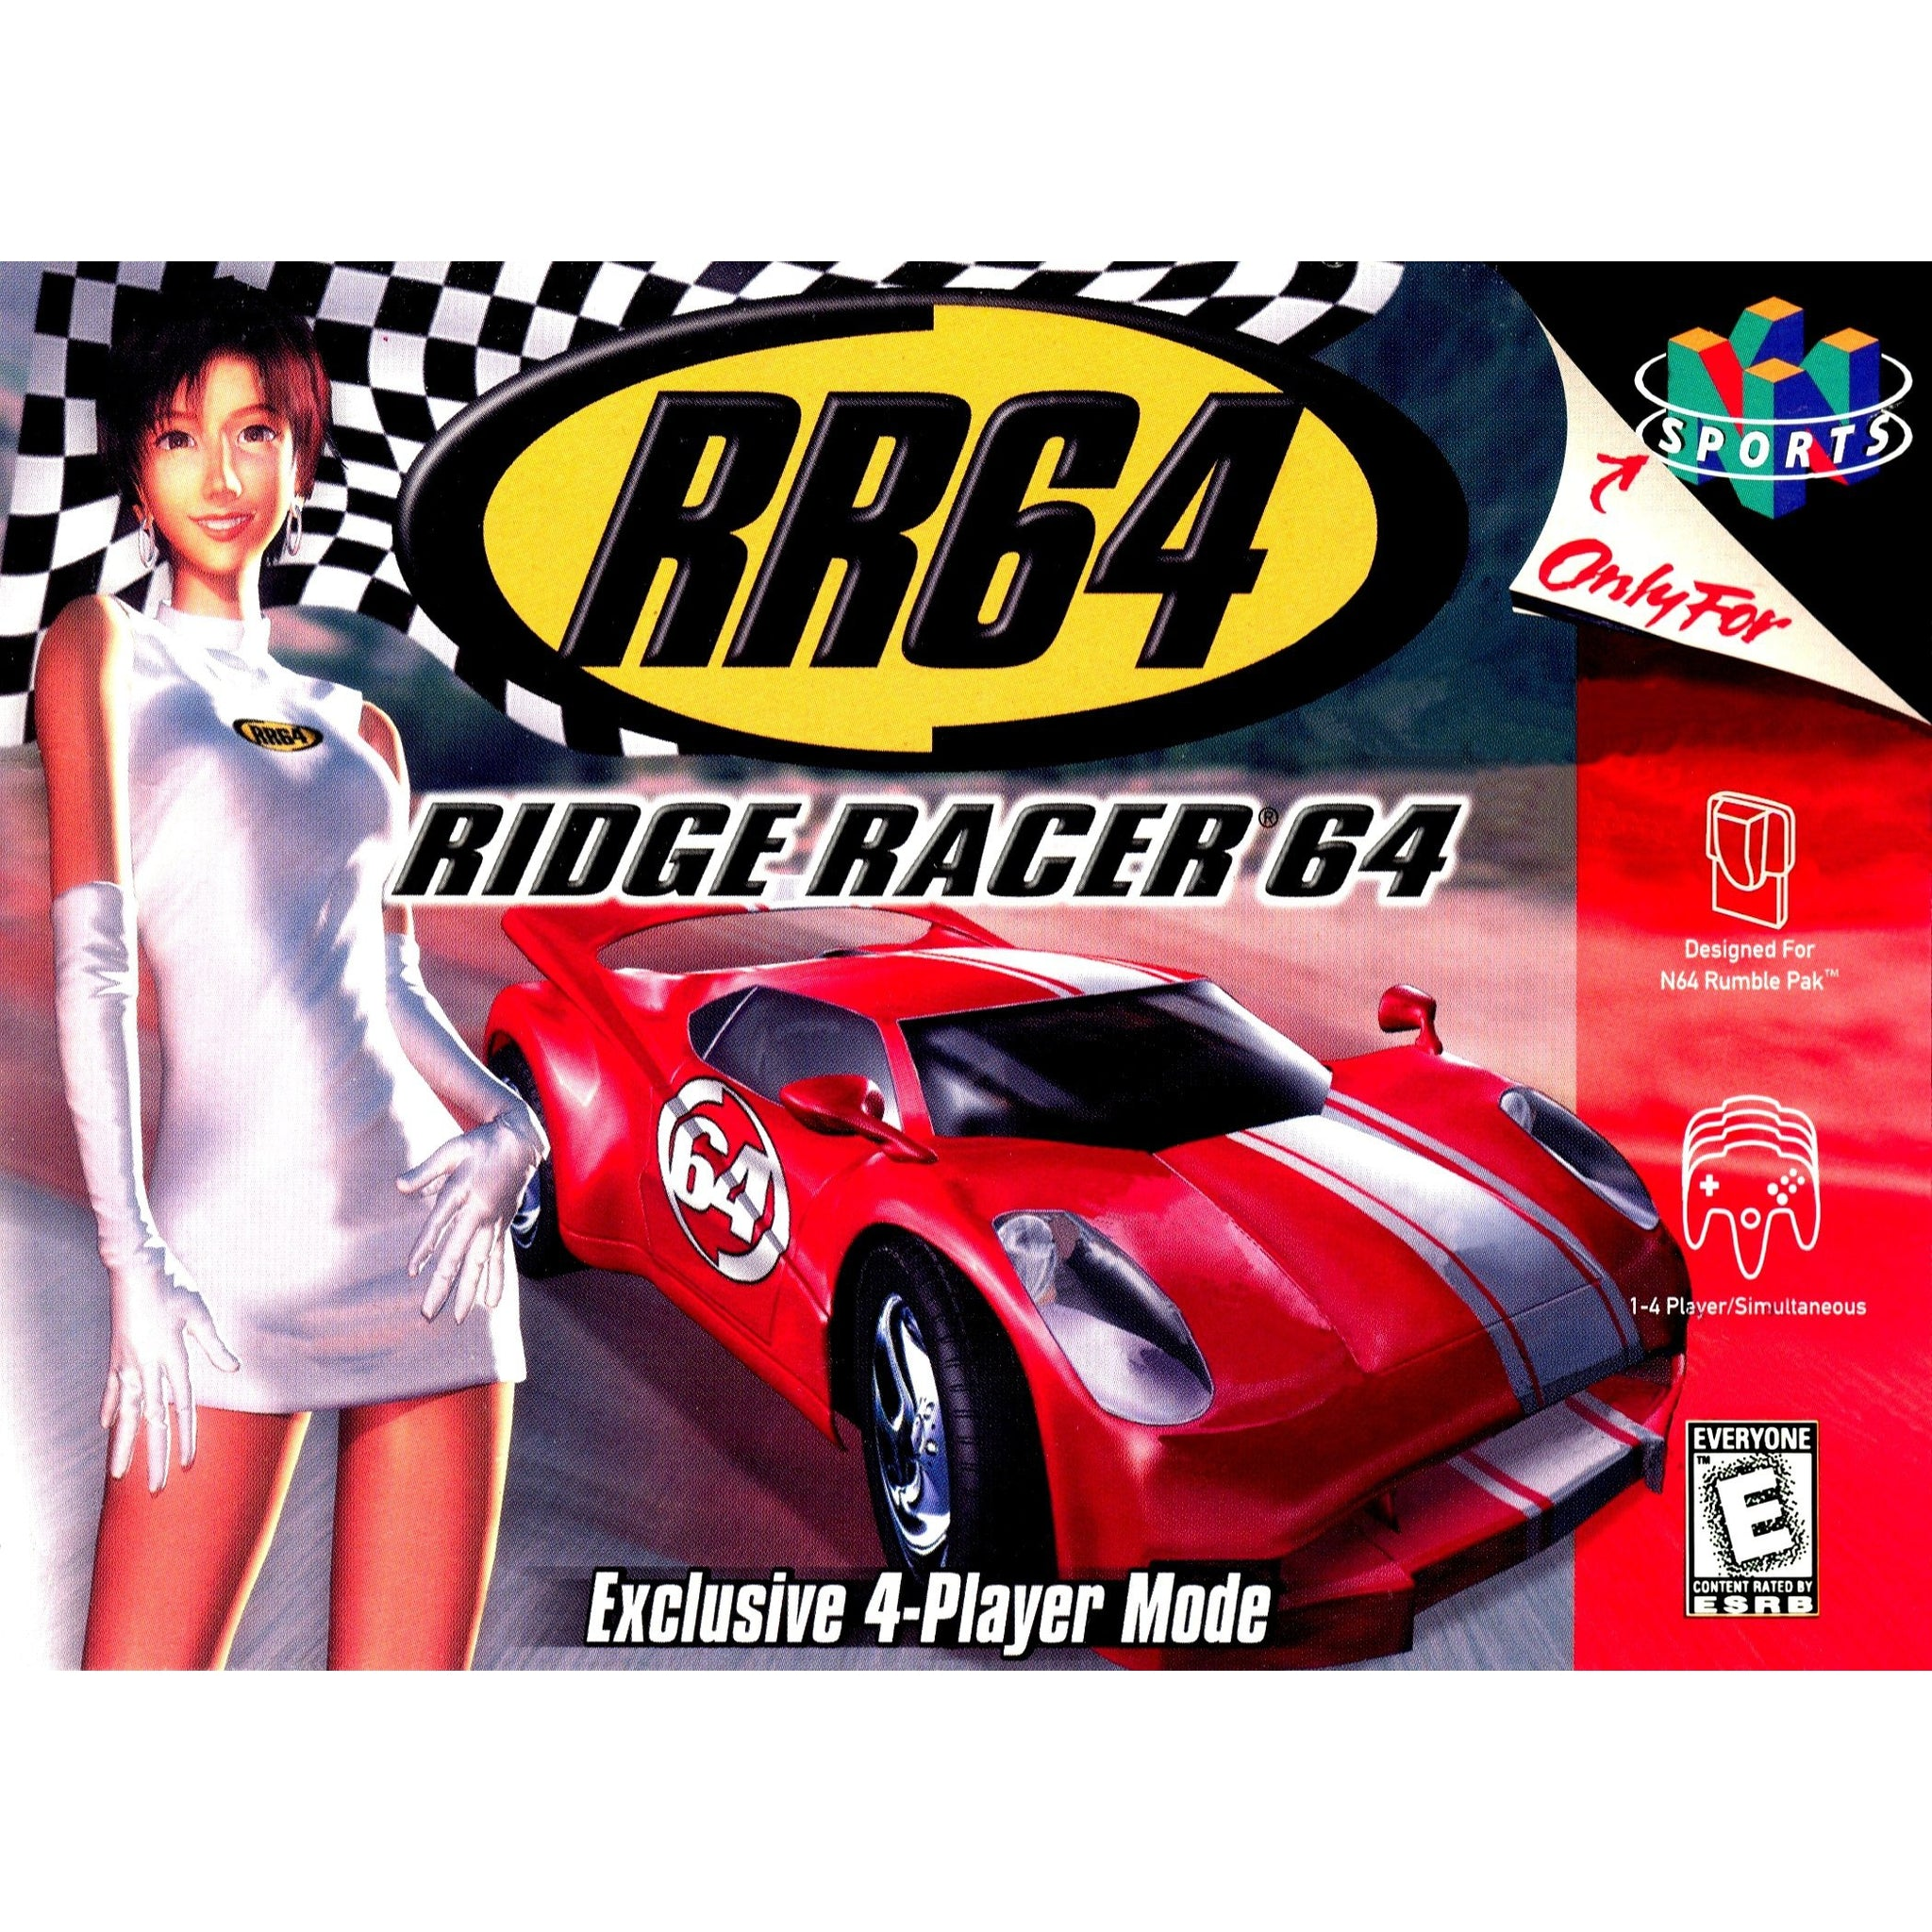 Ridge Racer 64 - Authentic Nintendo 64 (N64) Game Cartridge - YourGamingShop.com - Buy, Sell, Trade Video Games Online. 120 Day Warranty. Satisfaction Guaranteed.